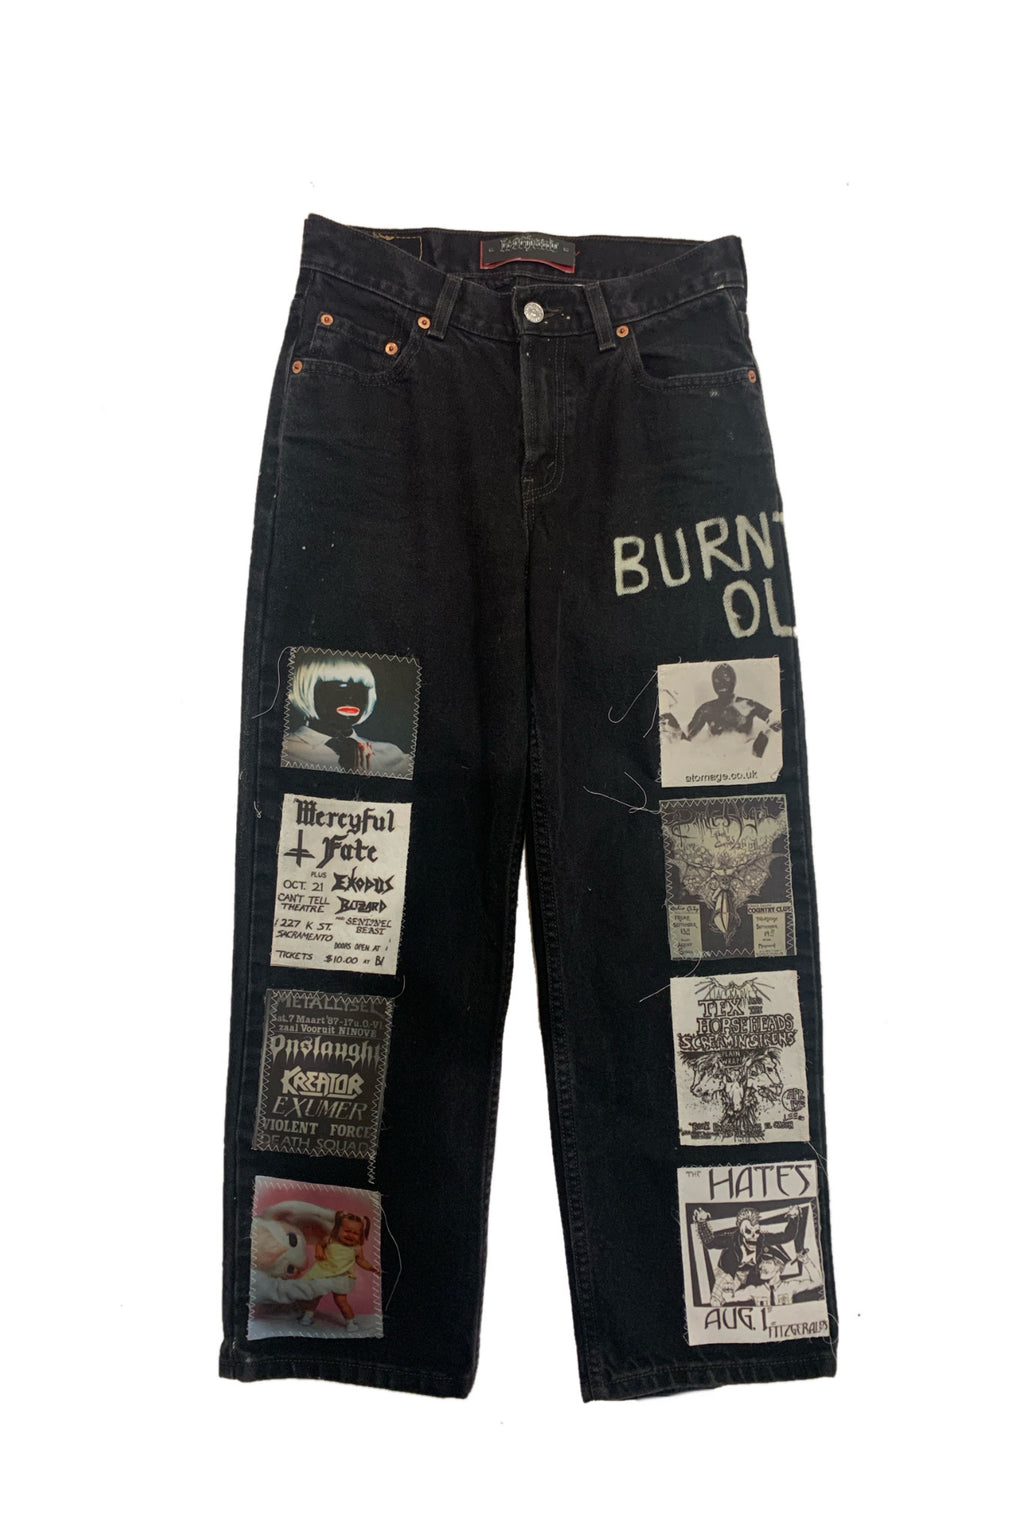 Burn out jeans